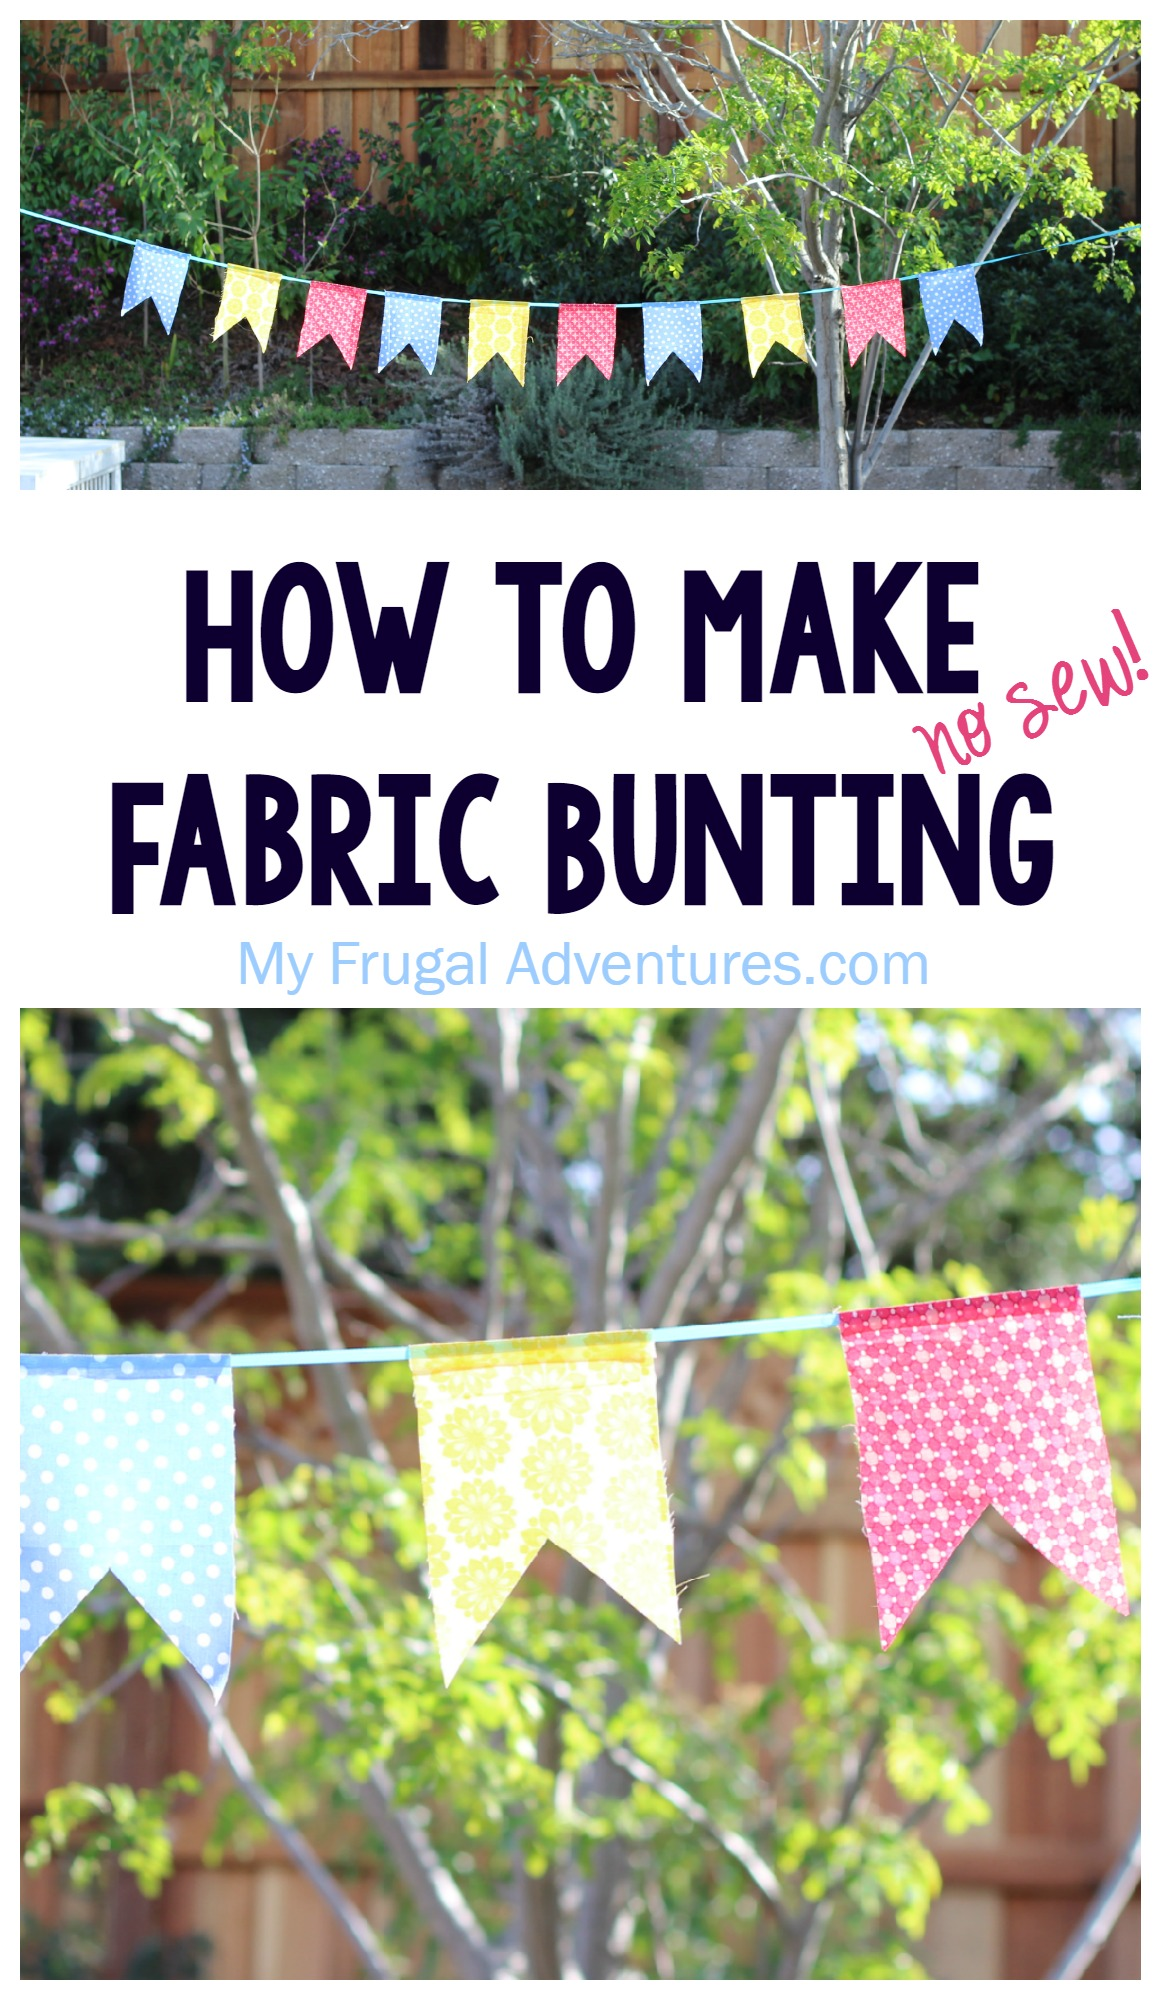 how to make fabric bunting no sew my frugal adventures. Black Bedroom Furniture Sets. Home Design Ideas